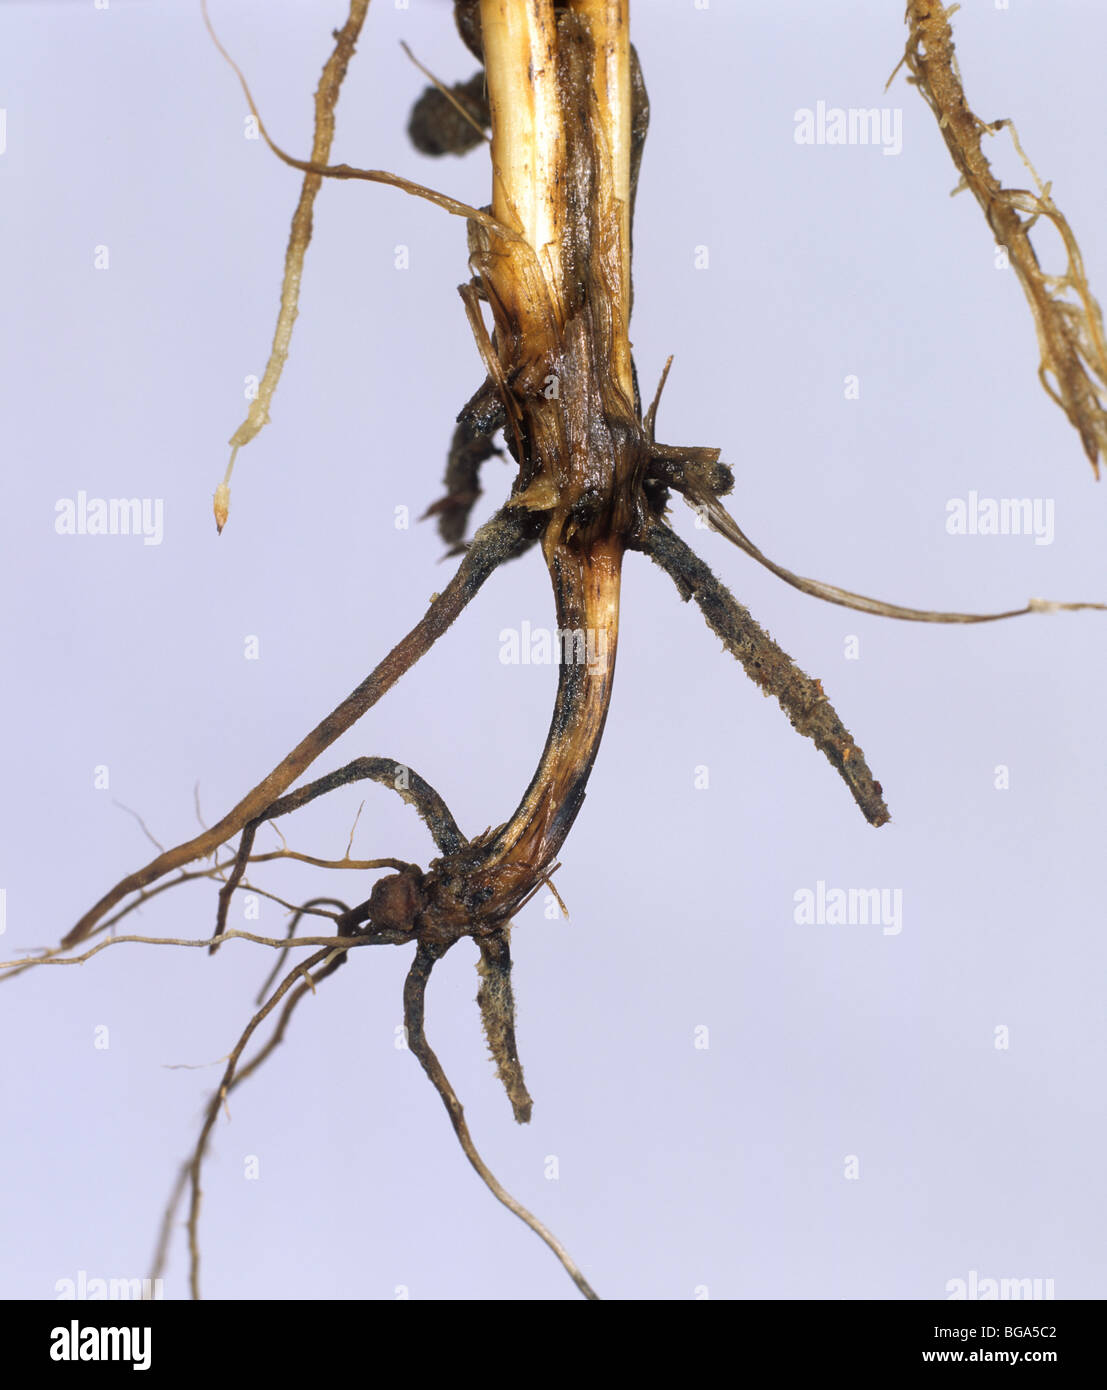 Common root rot (Cochliobolus sativus) discolouration of wheat sub crown internode - Stock Image